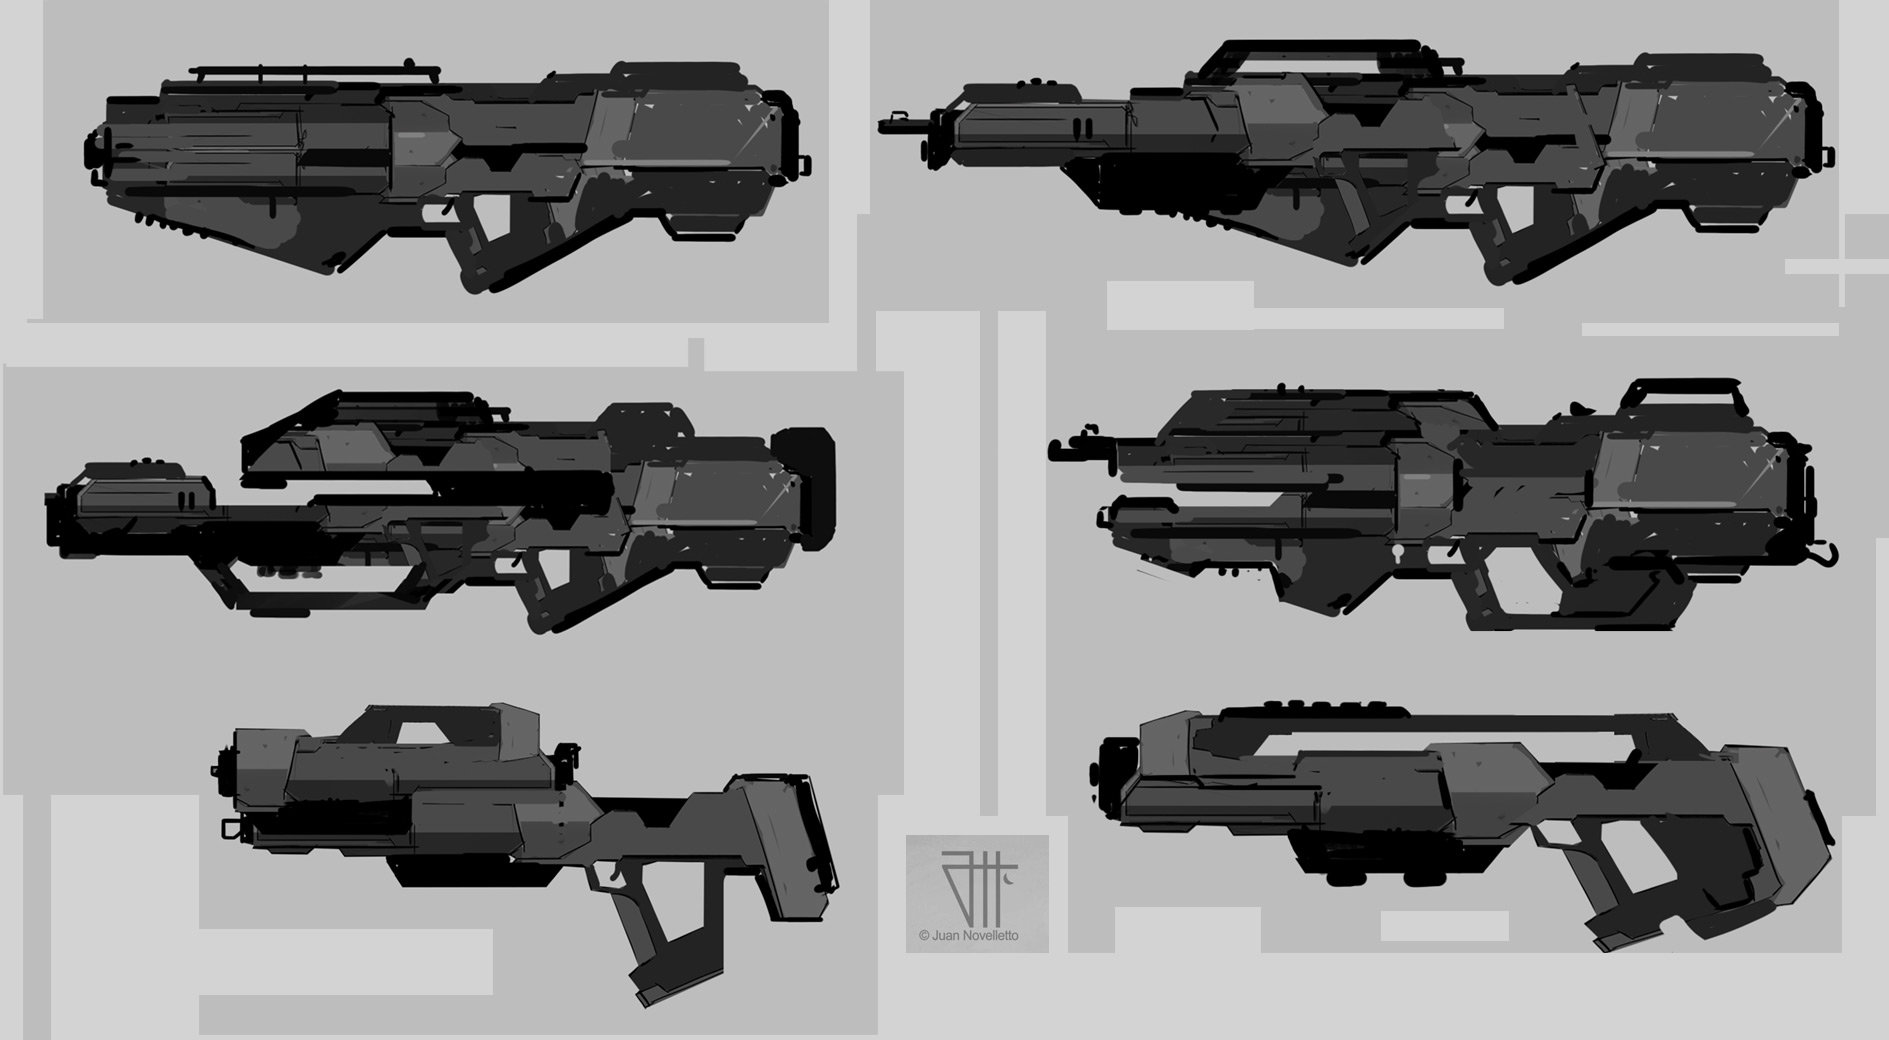 Juan novelletto weapon01 sketches